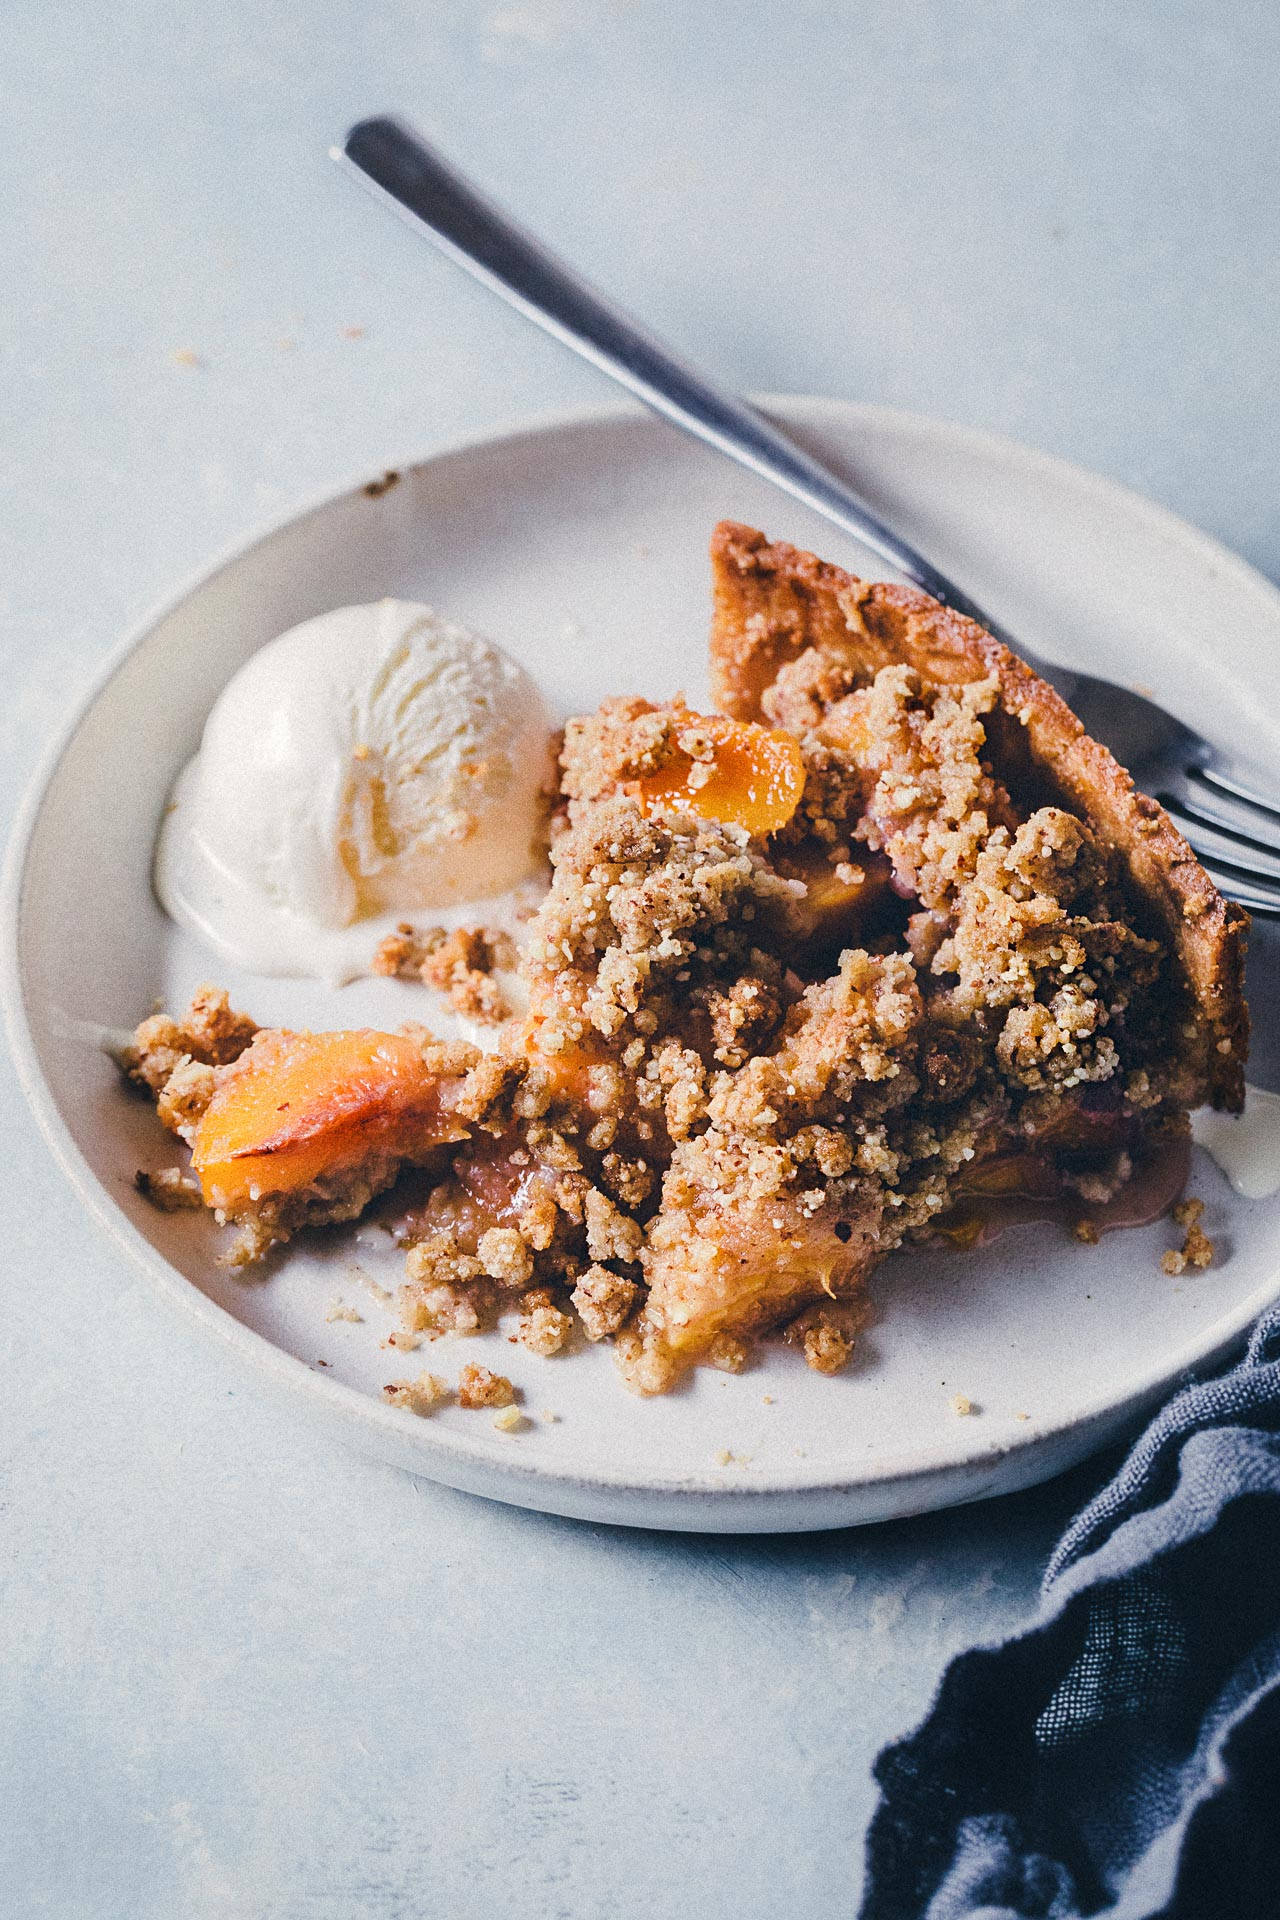 Nectarine Tart with Crumble Topping